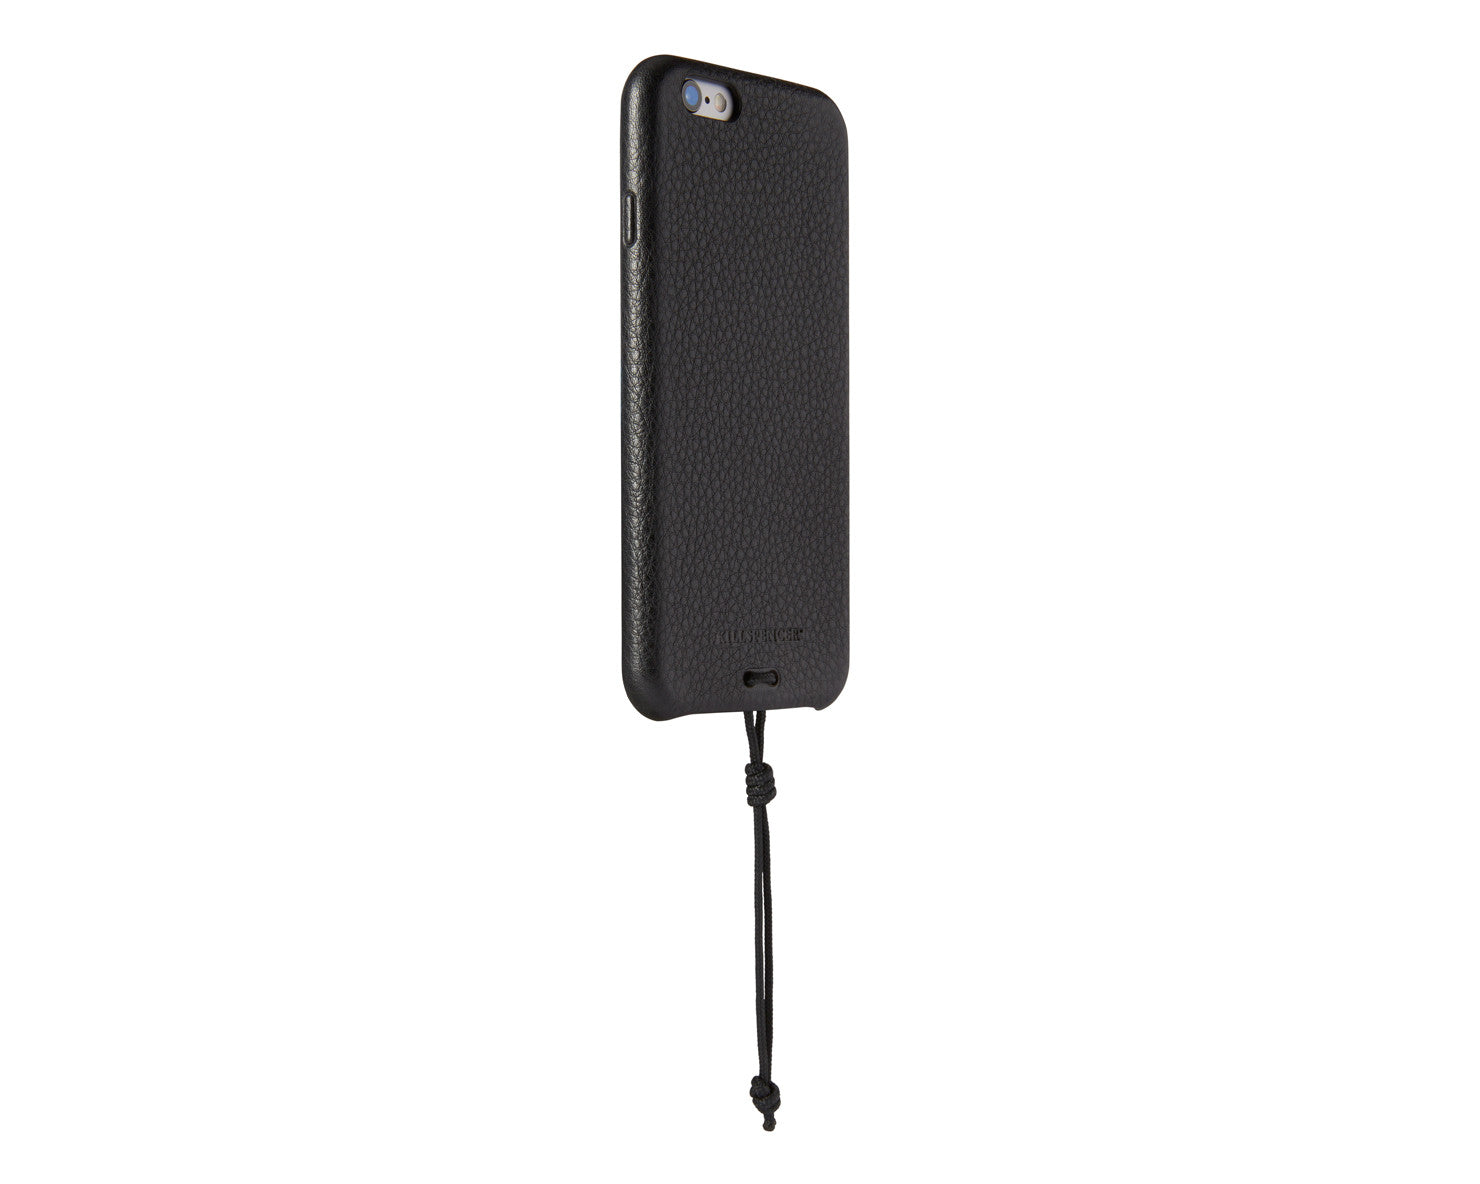 SNAP CASE FOR IPHONE 6/6S | KILLSPENCER® - Black Leather